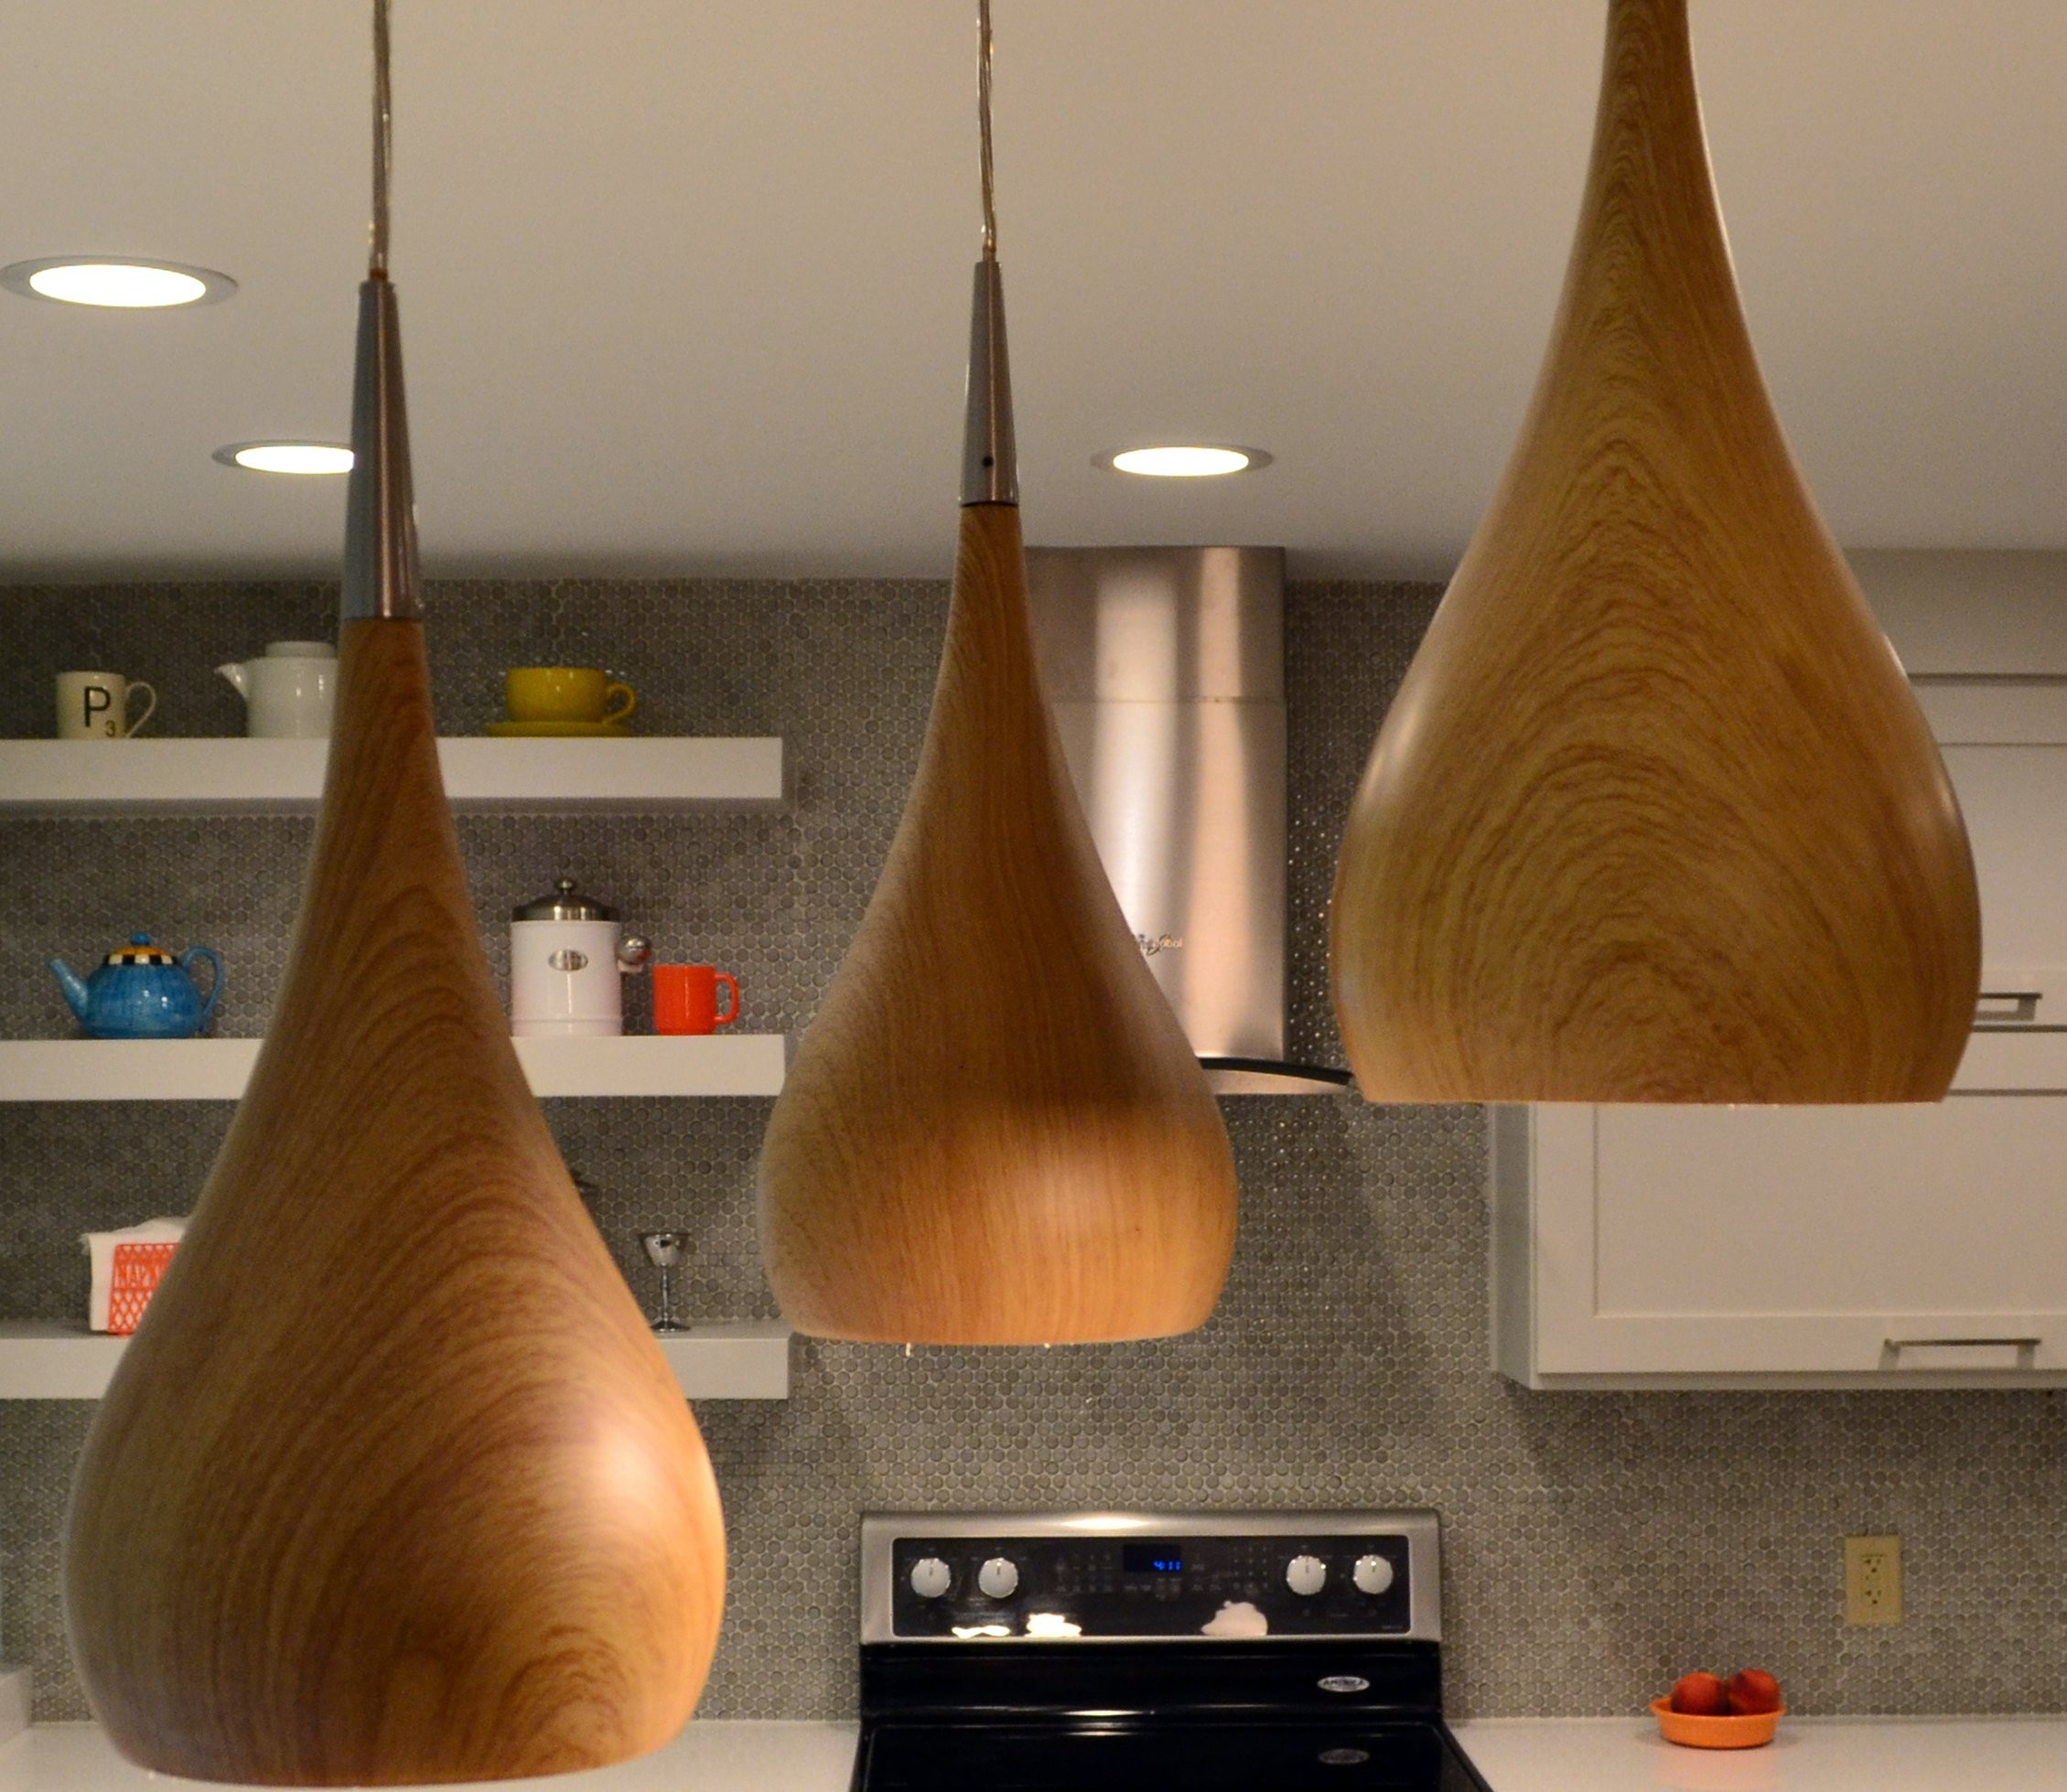 Illuminating Kitchen Lighting: Pendant Lighting Brings Style And Illumination